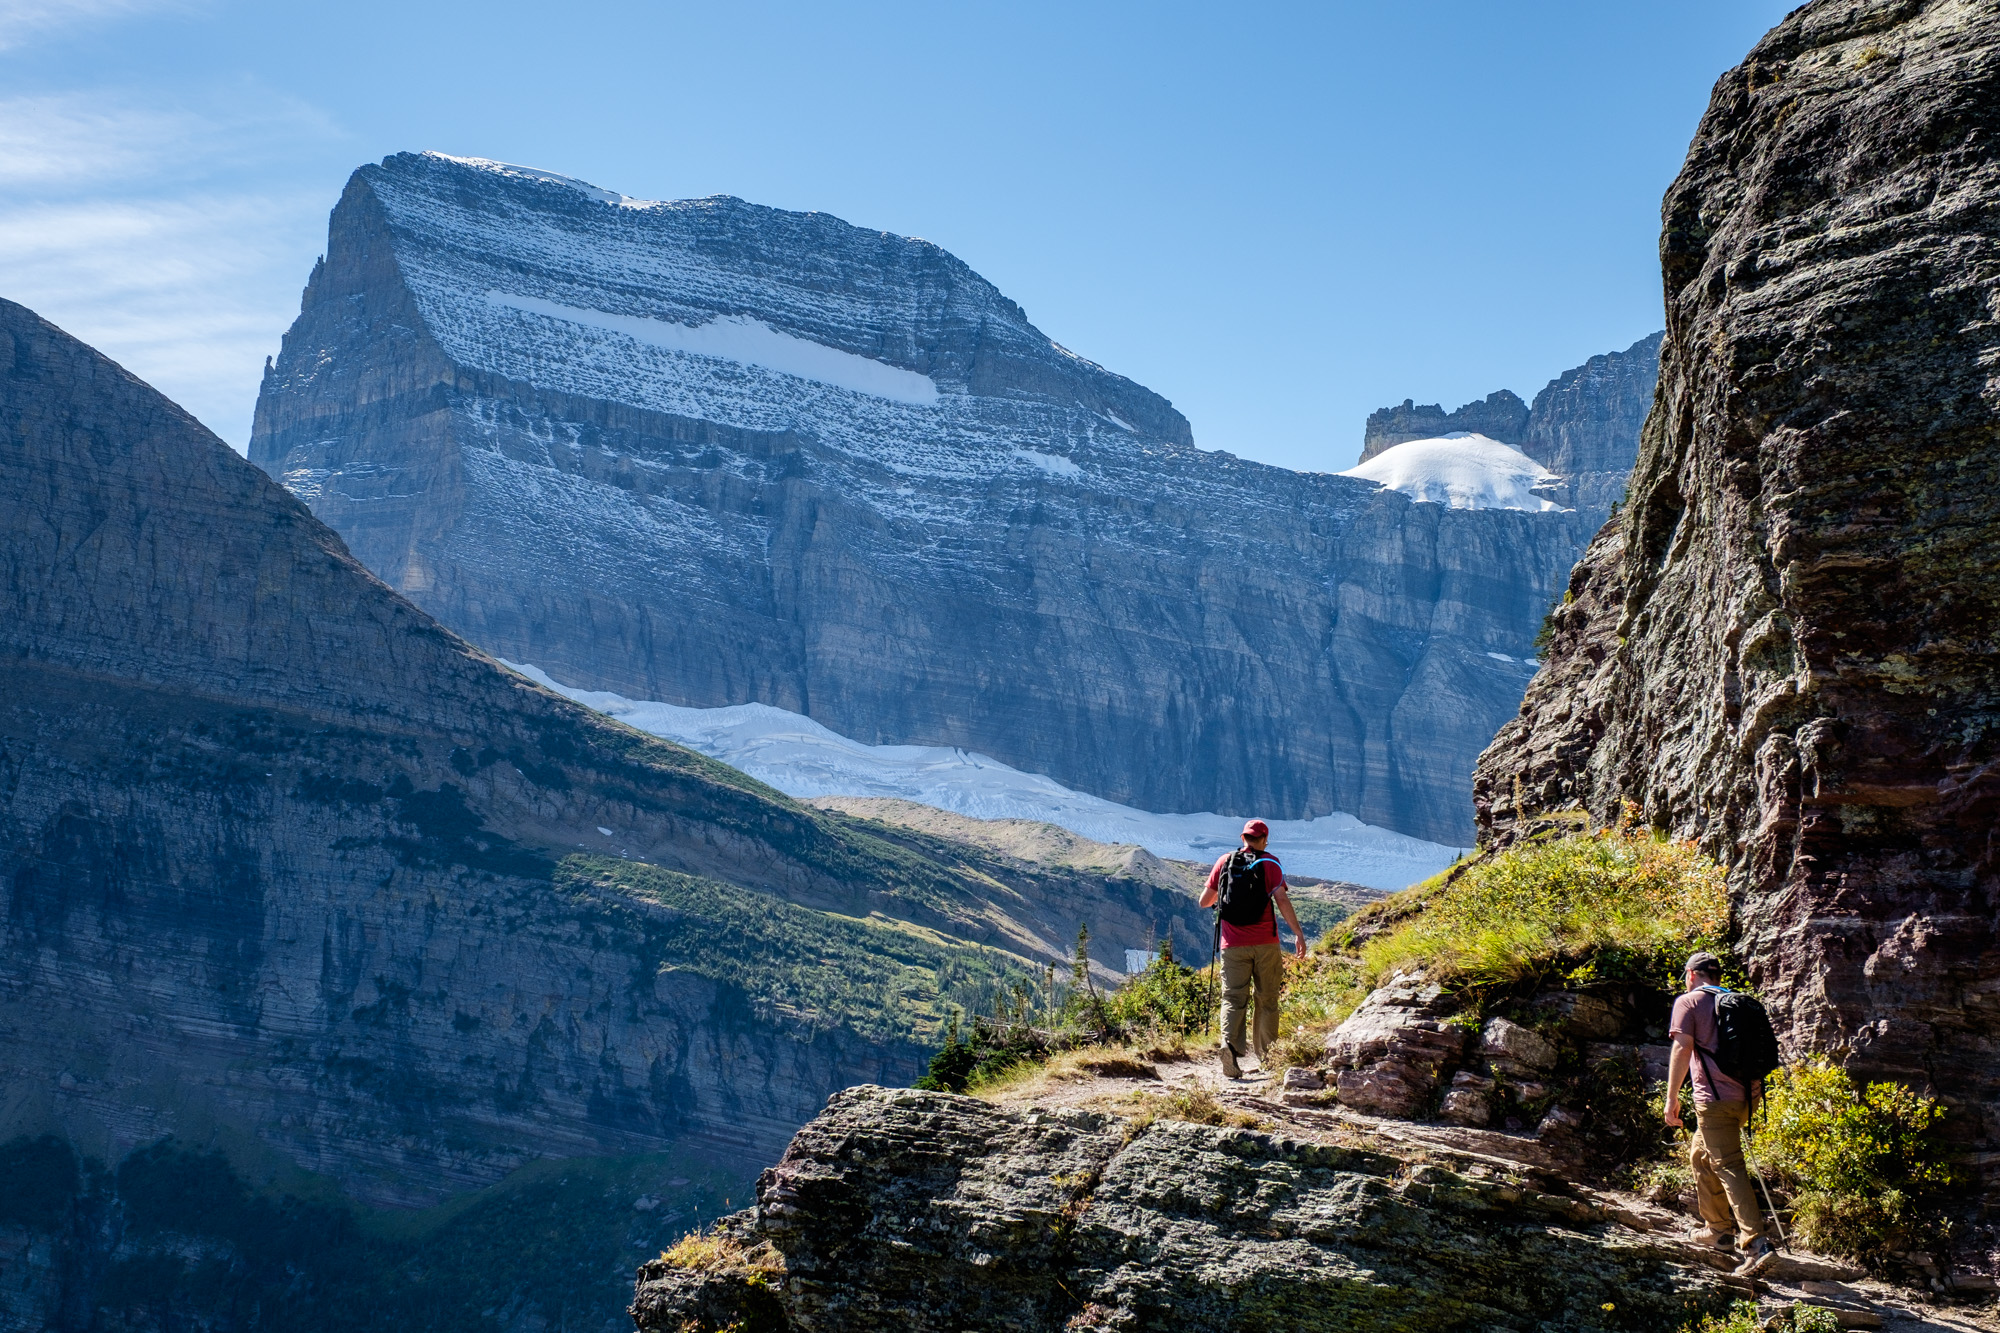 The views just kept getting better and better as we ascended the Grinnell Glacier Trail.